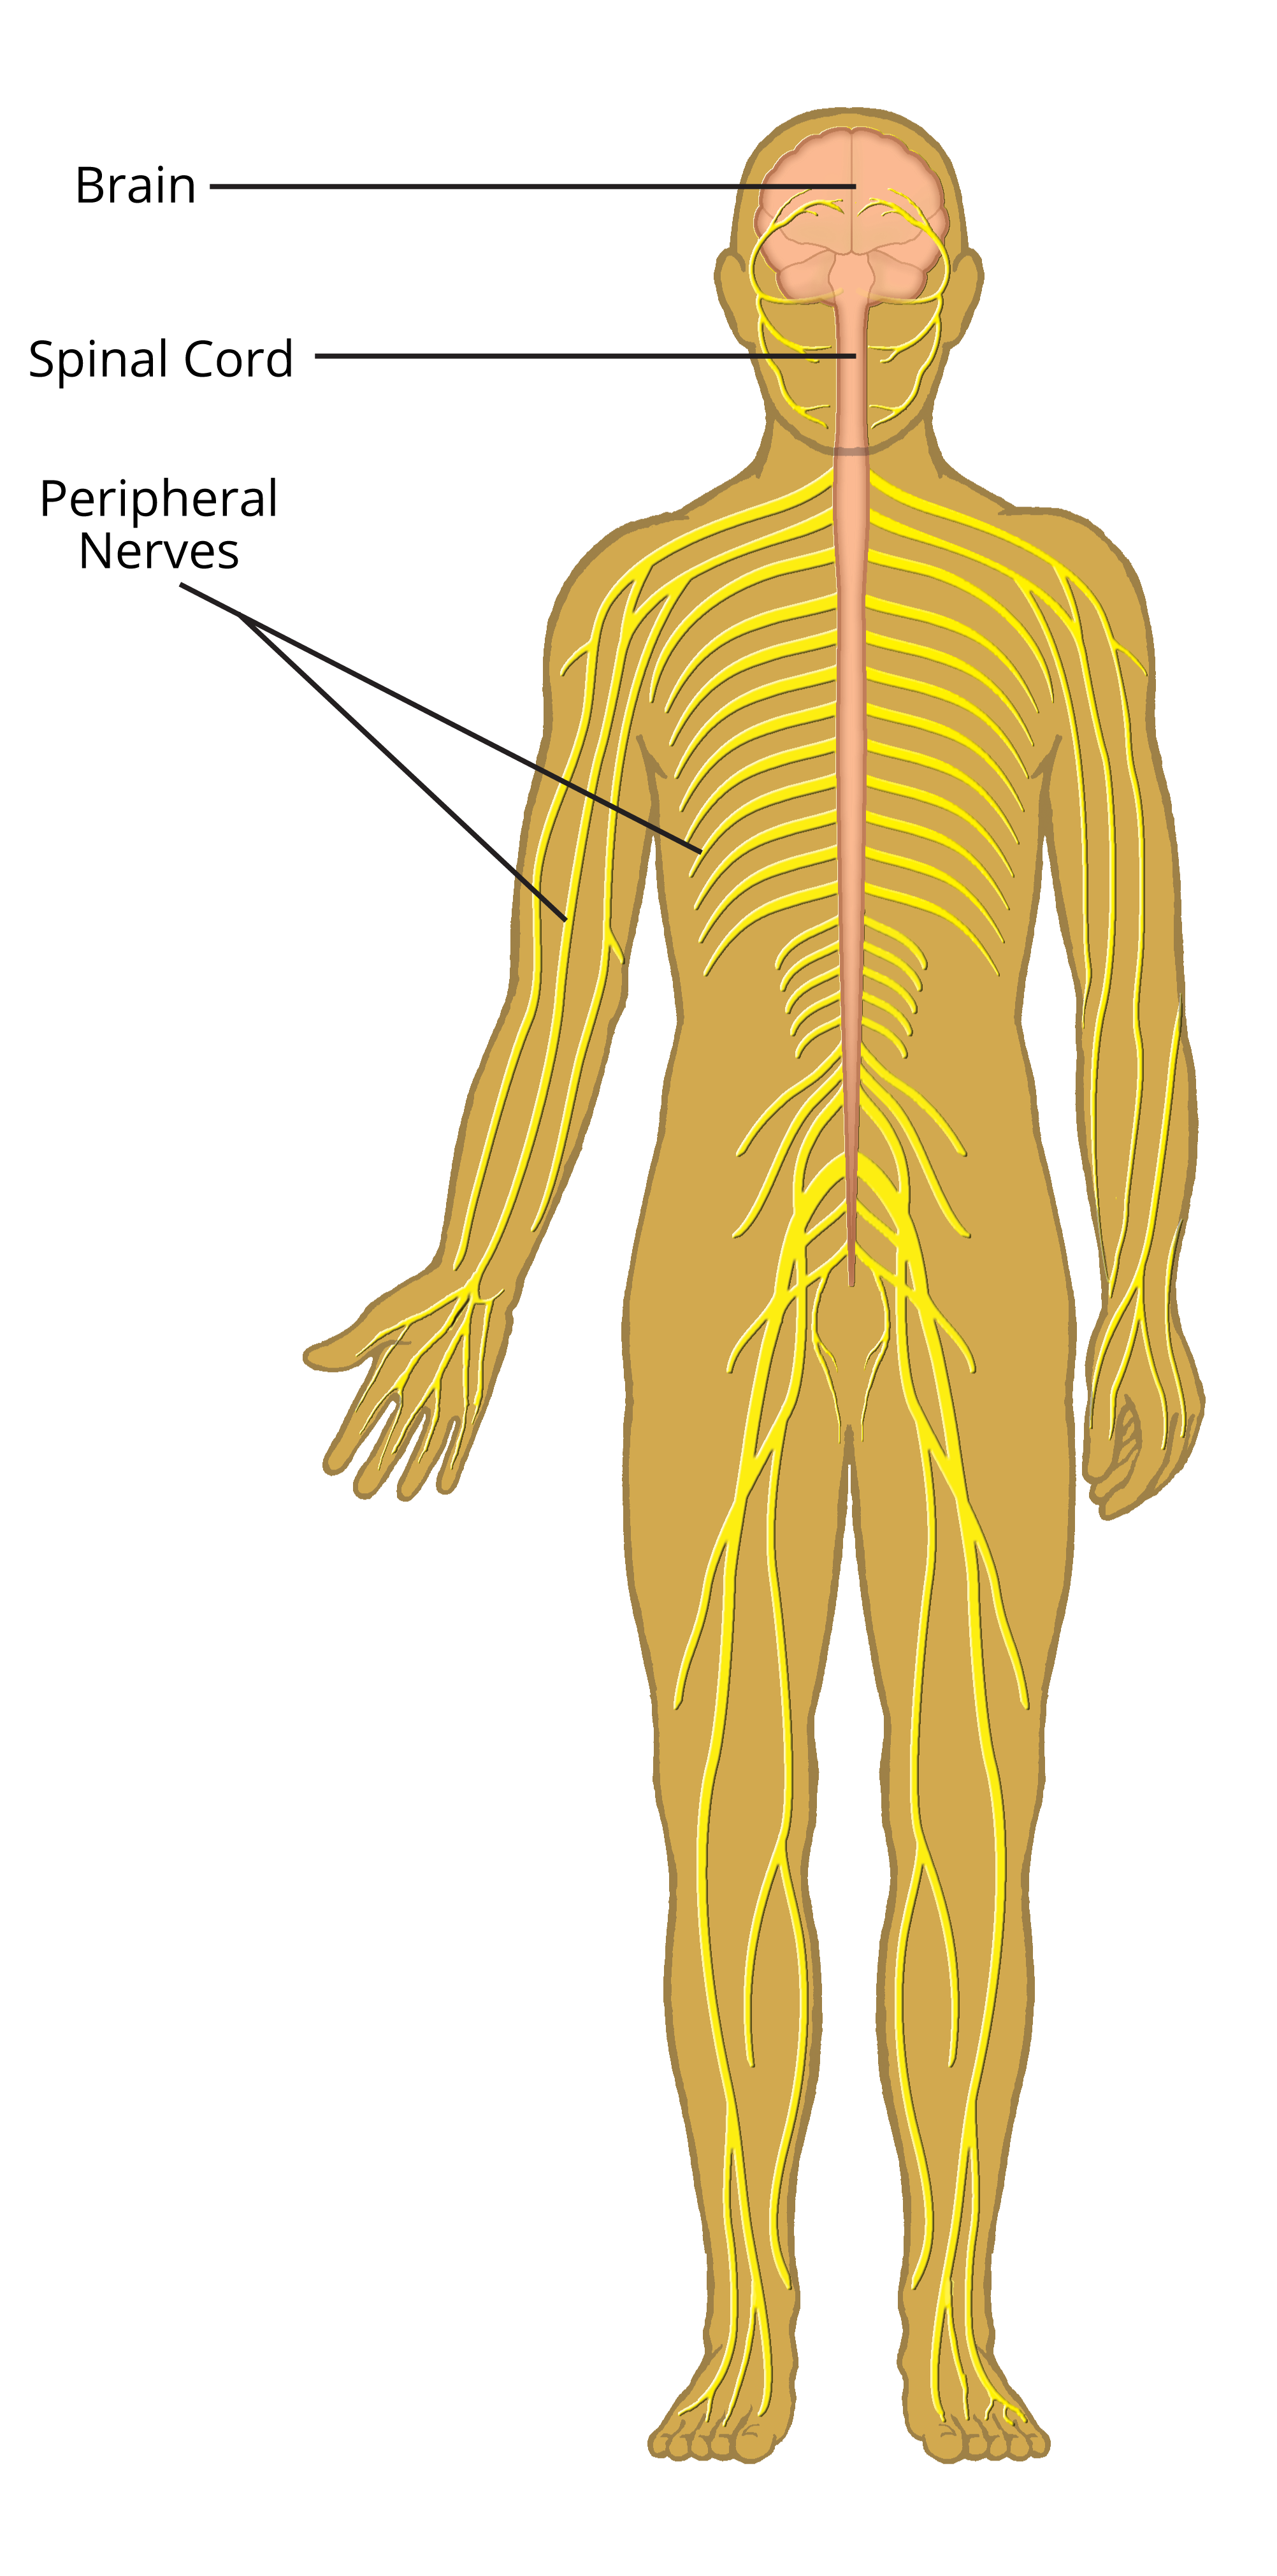 About The Nervous System Axogen Inc Axgn